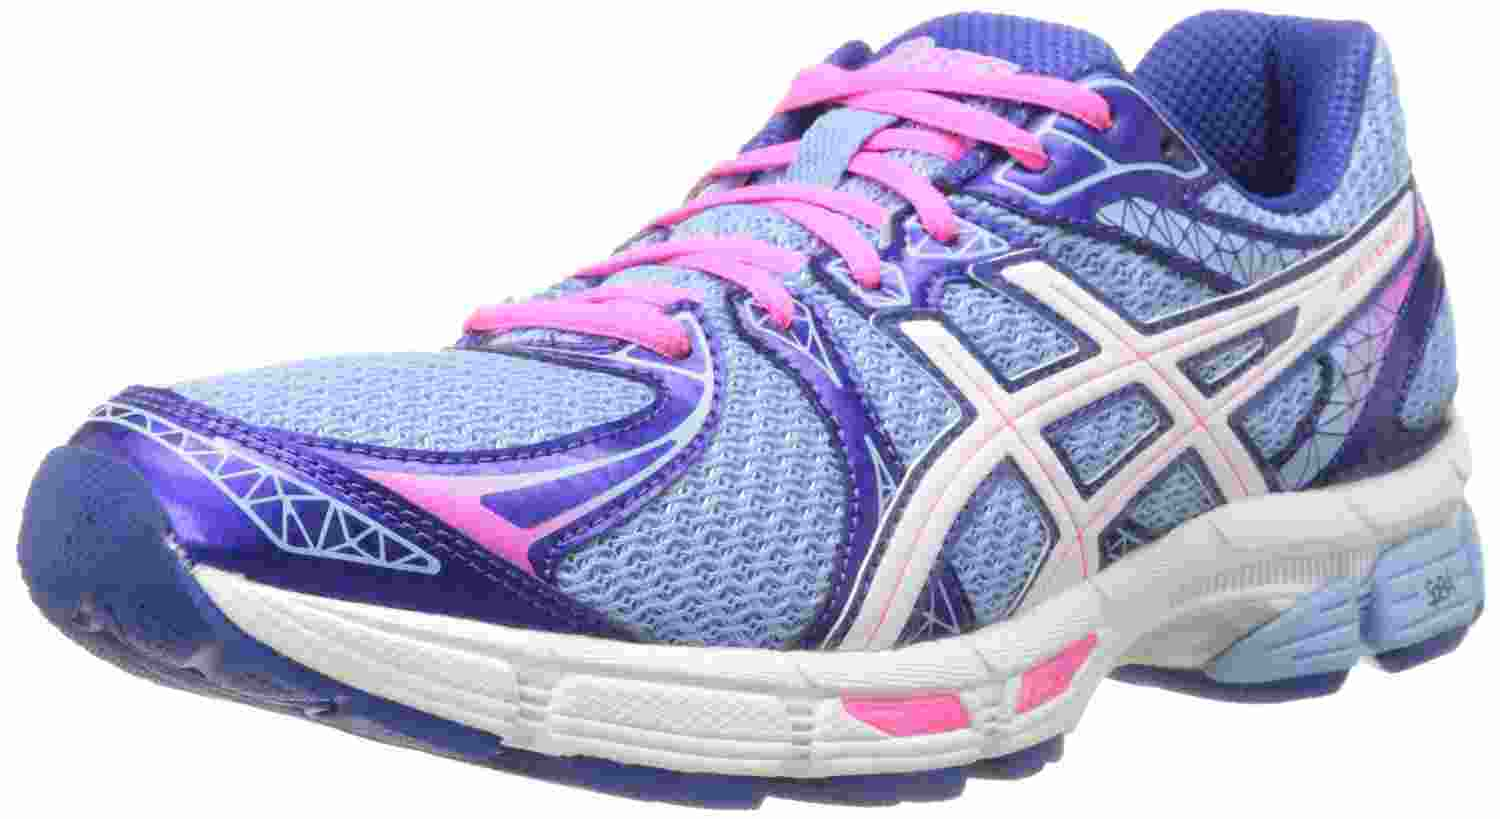 ASICS Women's GEL-Exalt 2 Running Shoe Review - Feet Fitness